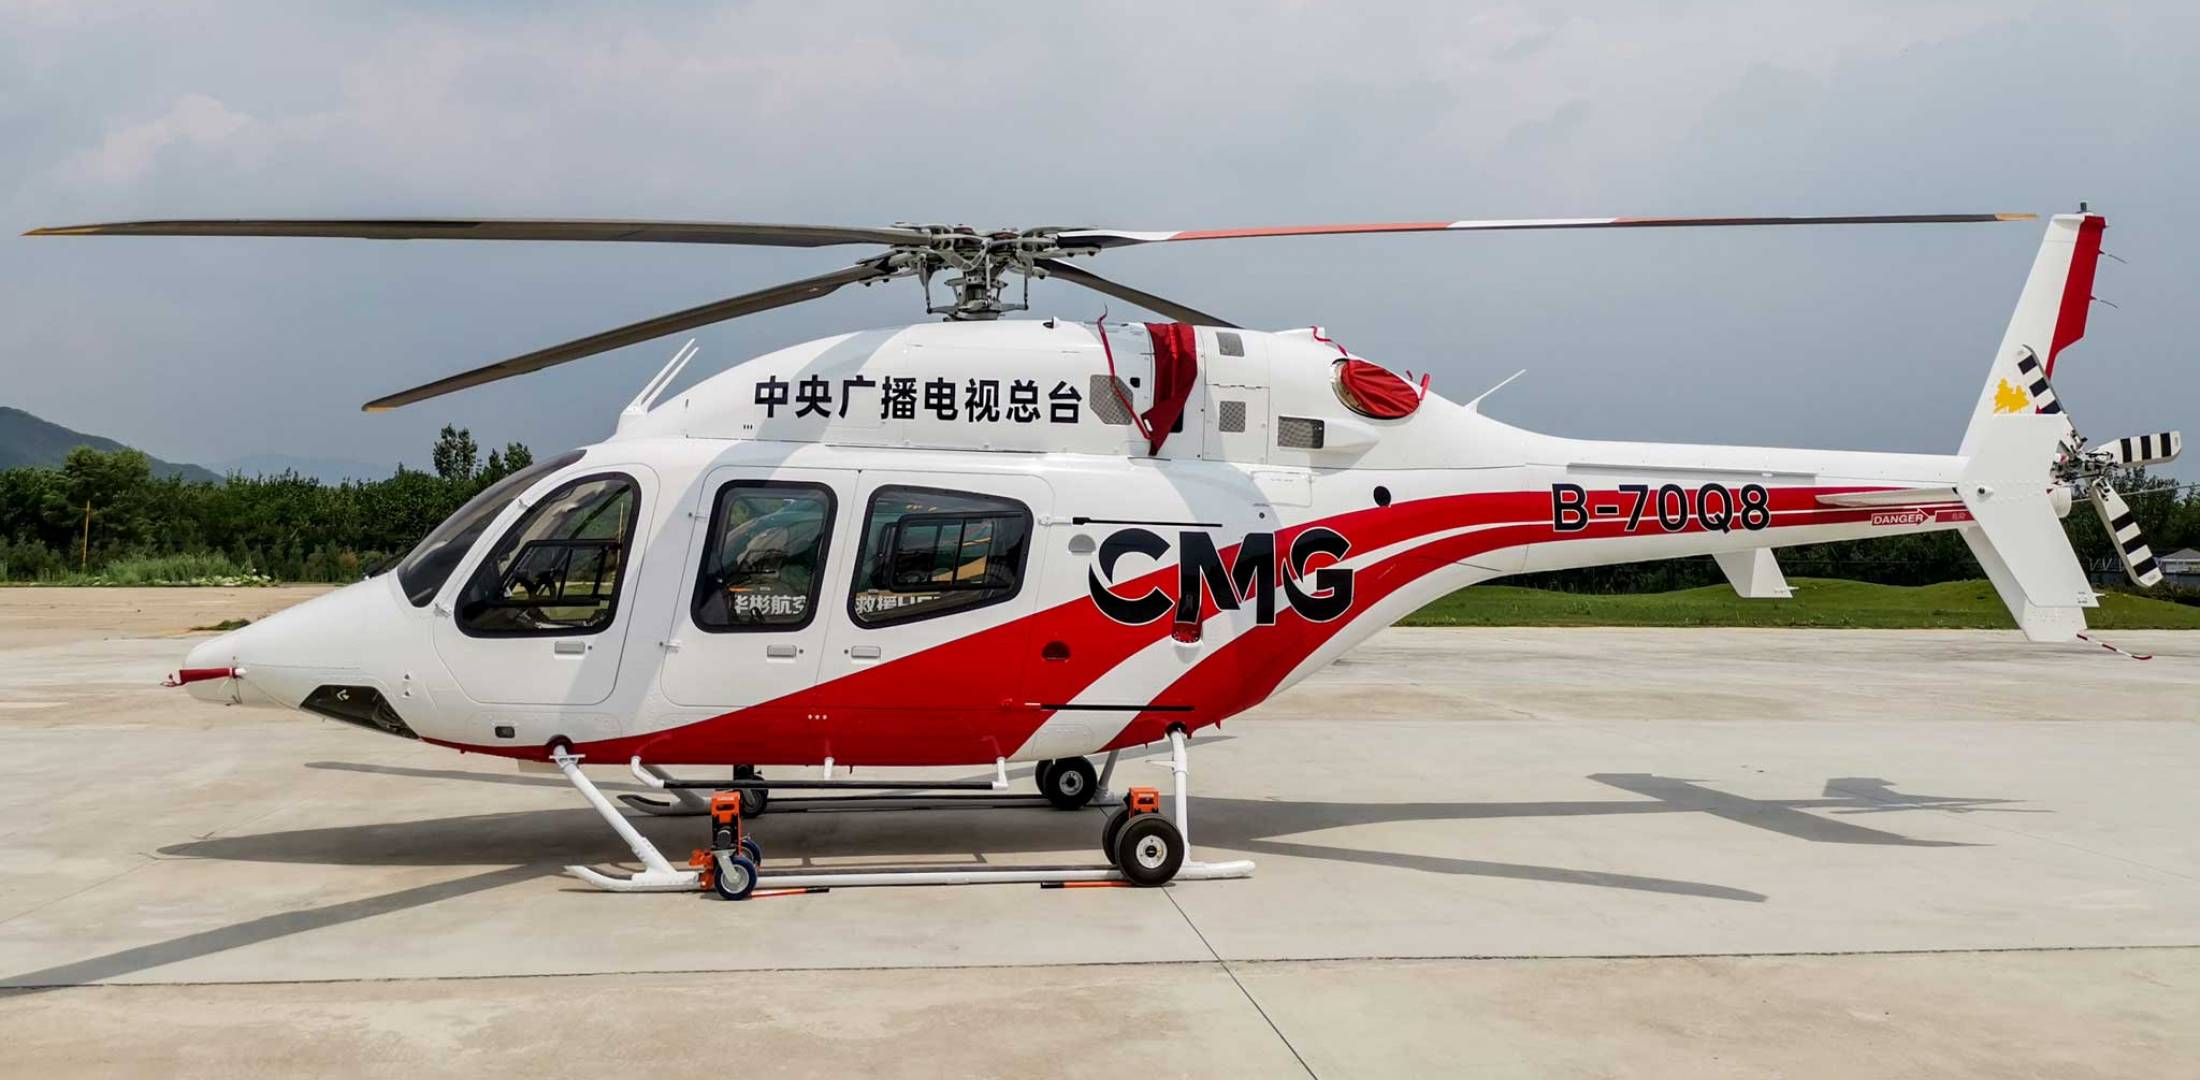 ENG equipped Bell 429